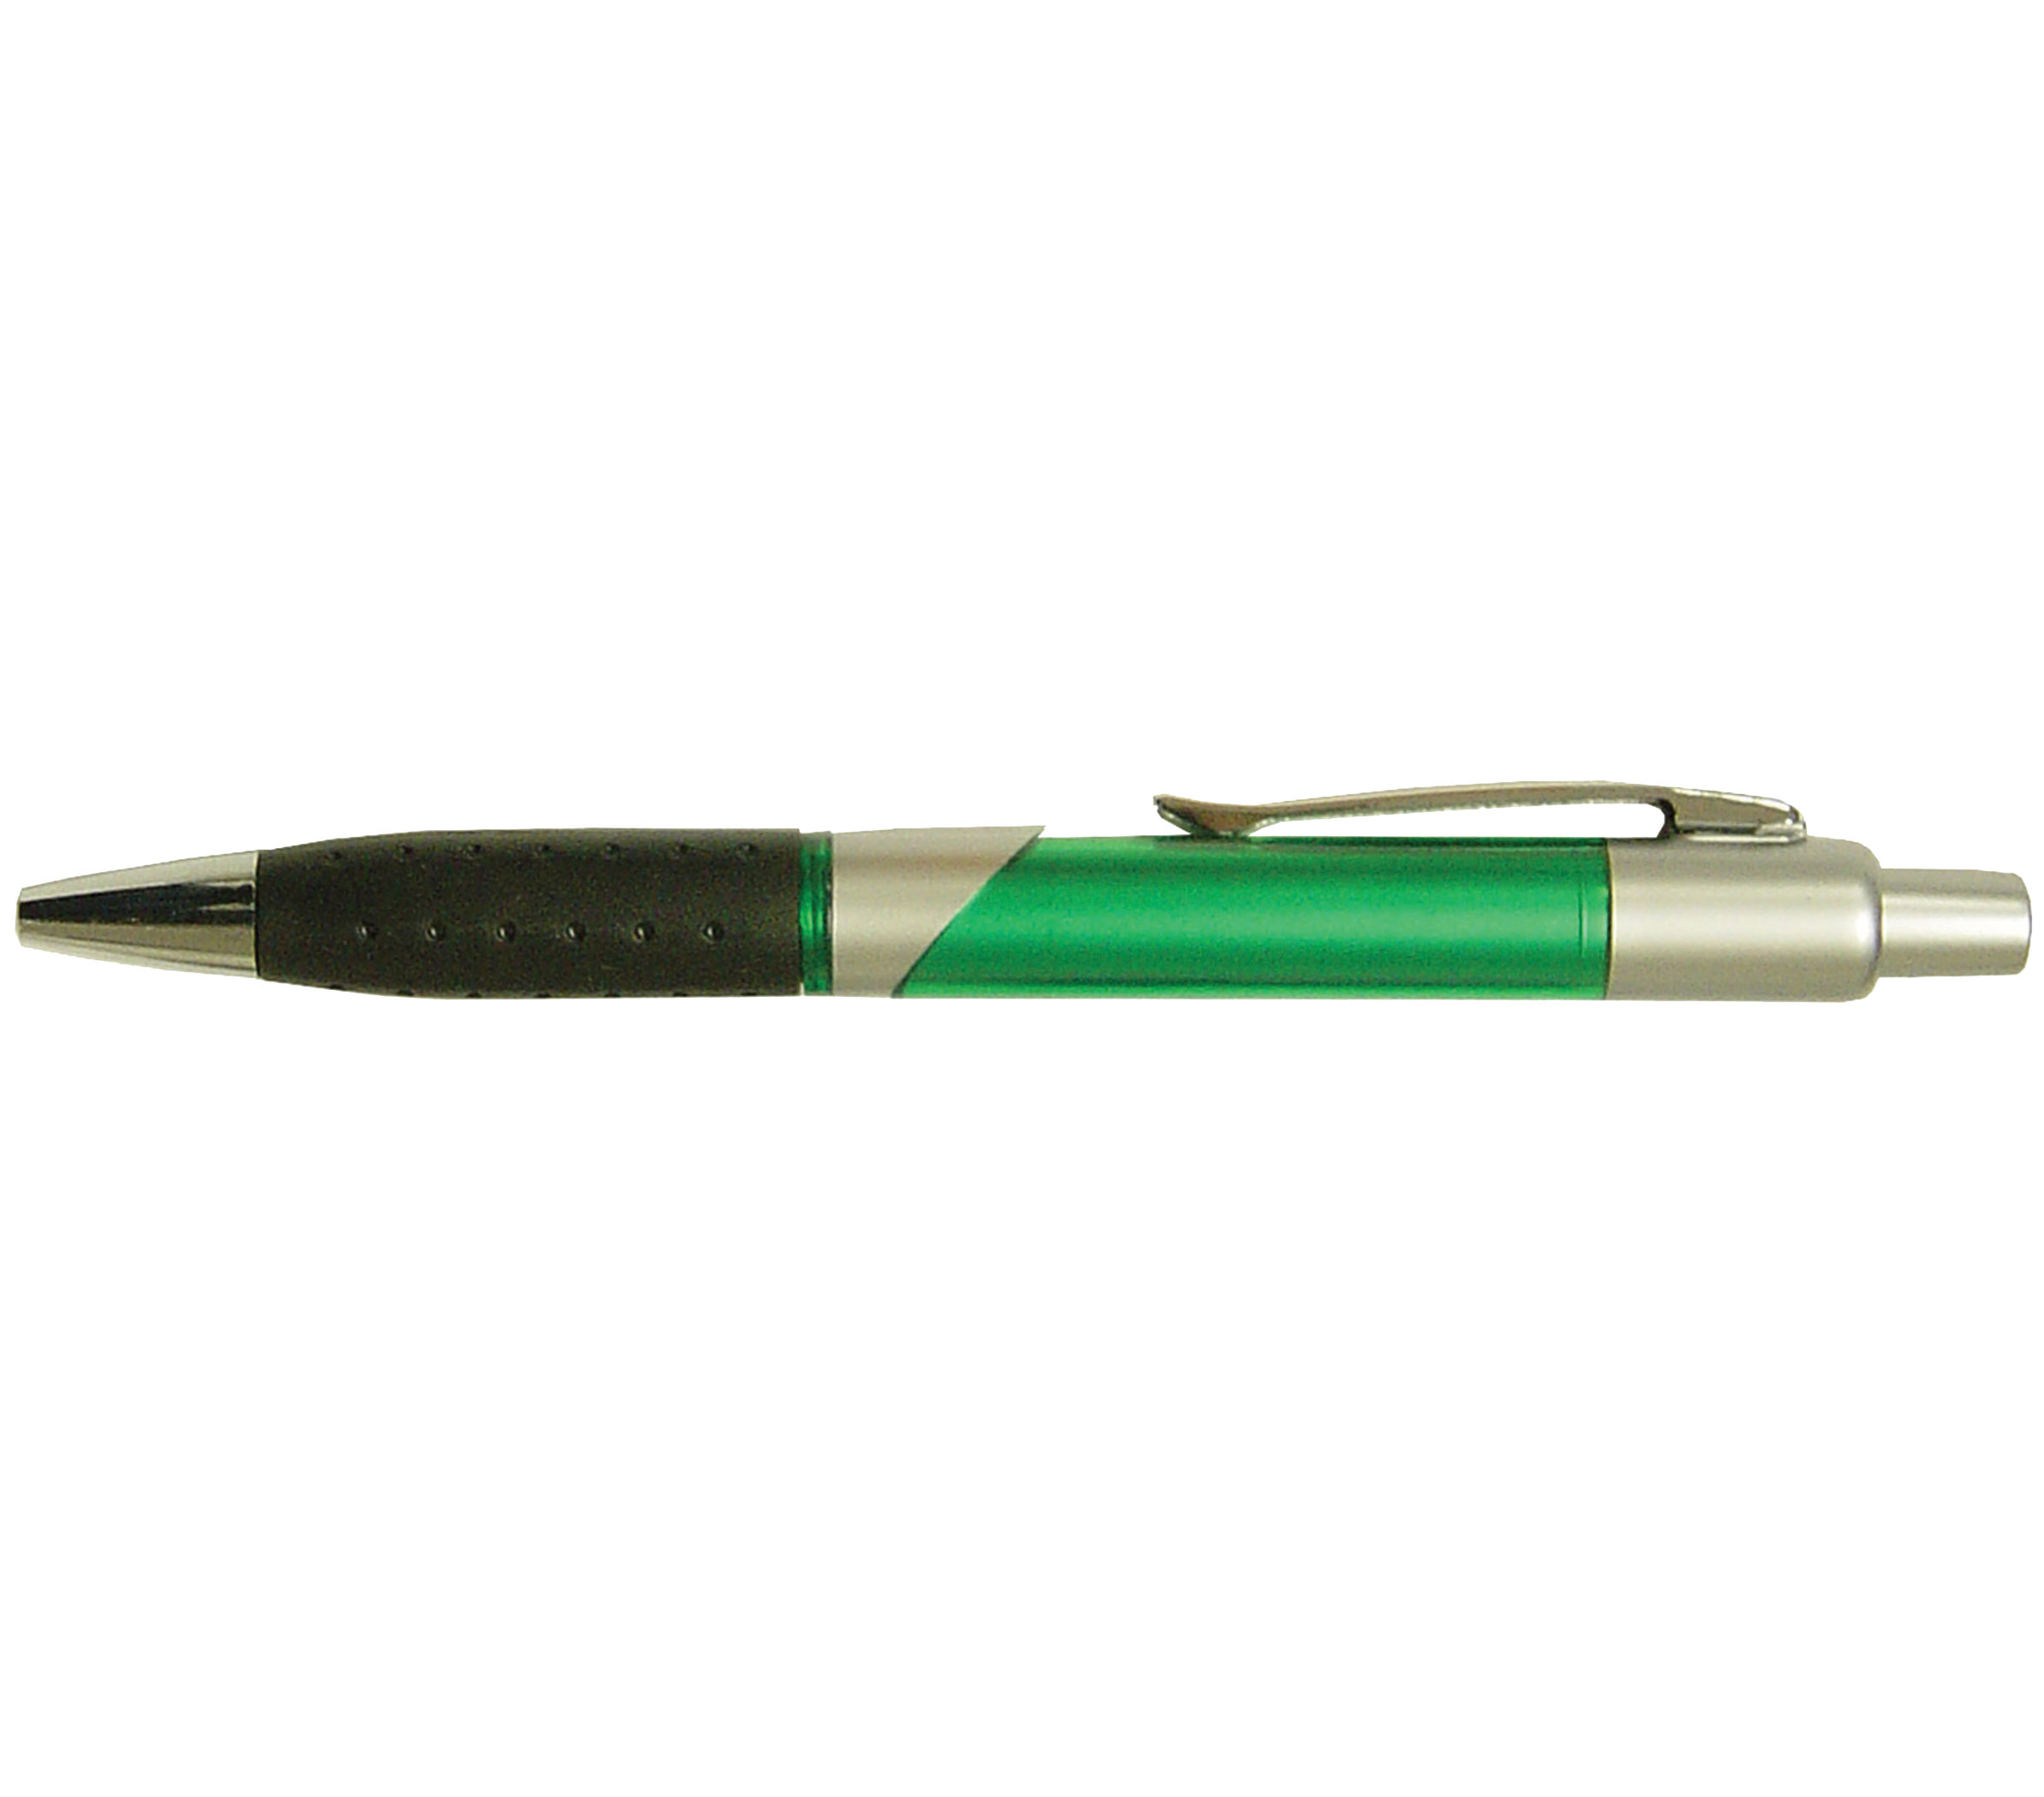 Transparent pens. Pen png images all